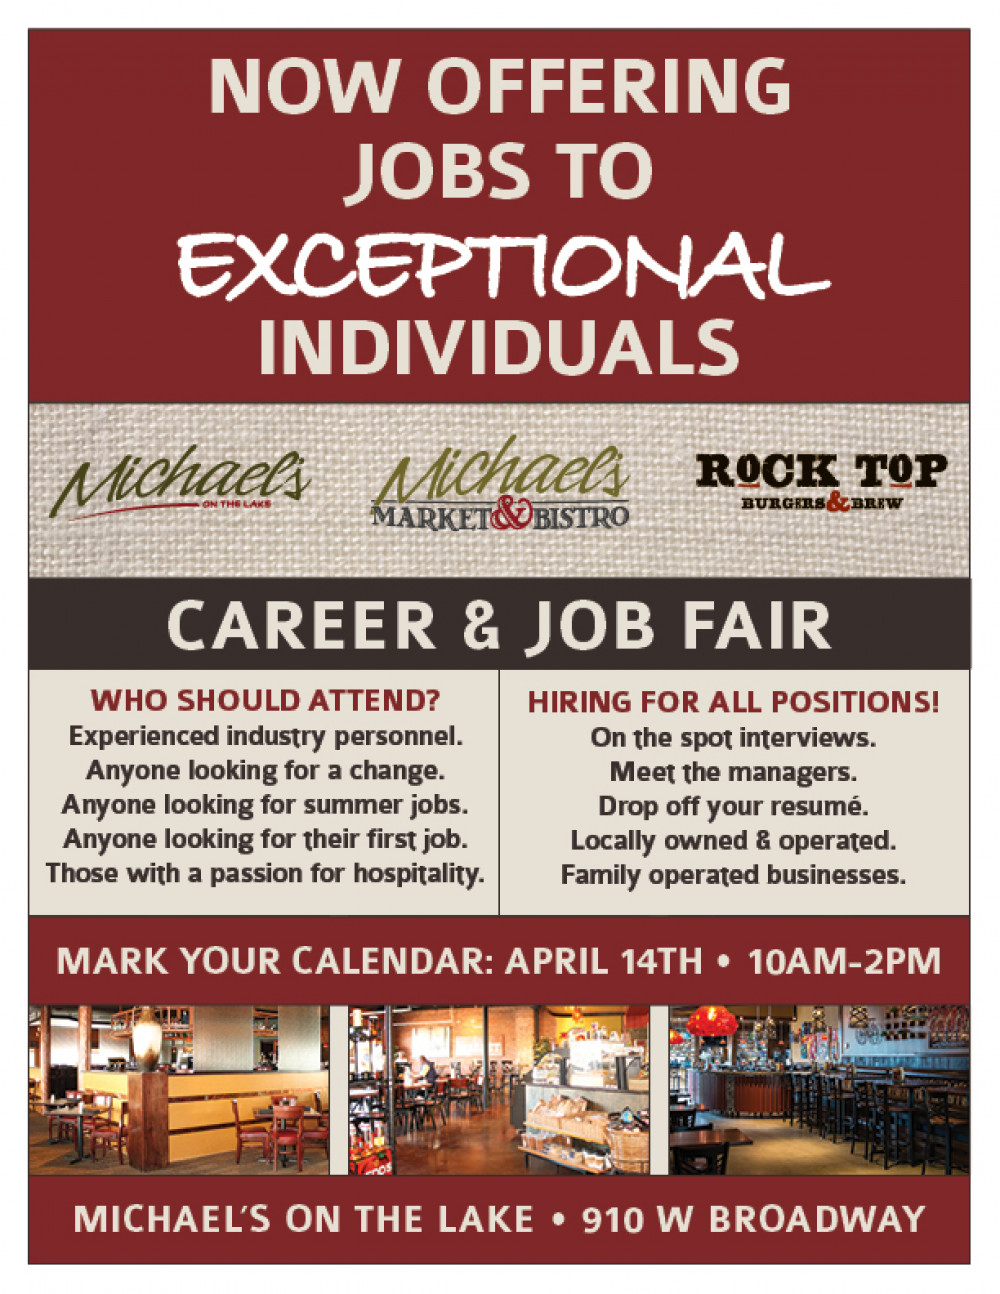 Career & Job Fair